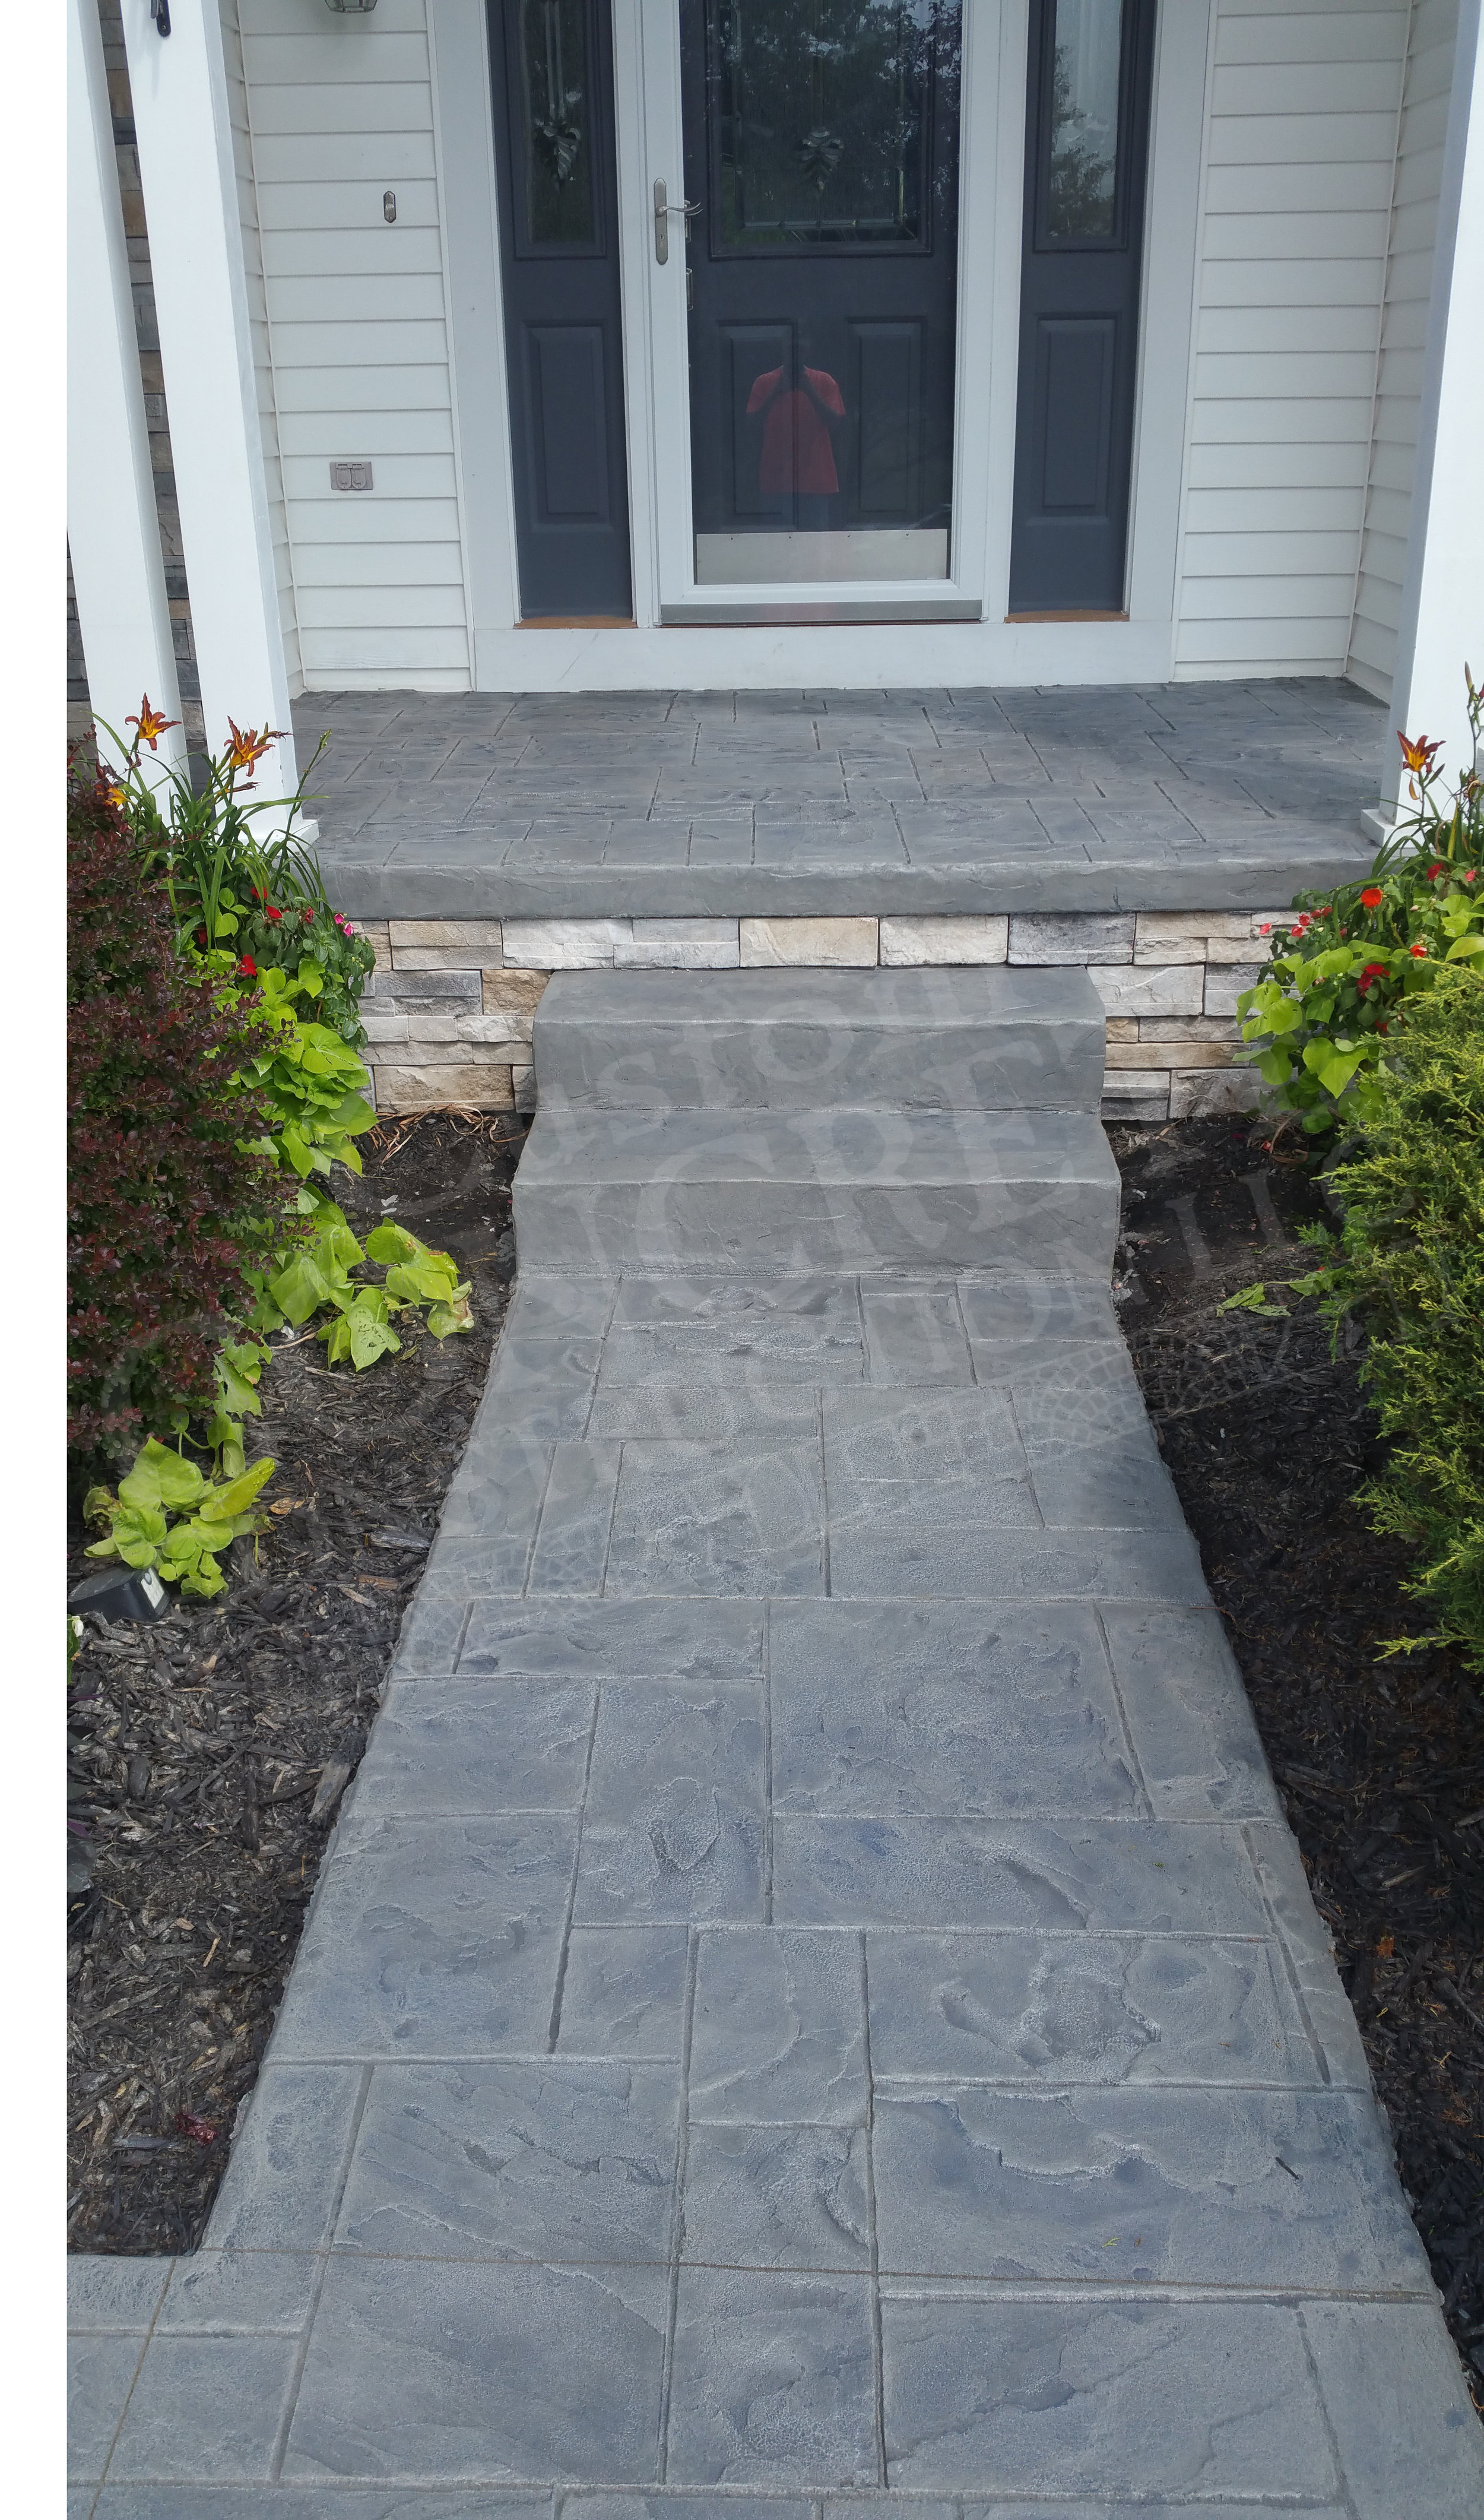 Stamped Overlay completed at a Youngstown home